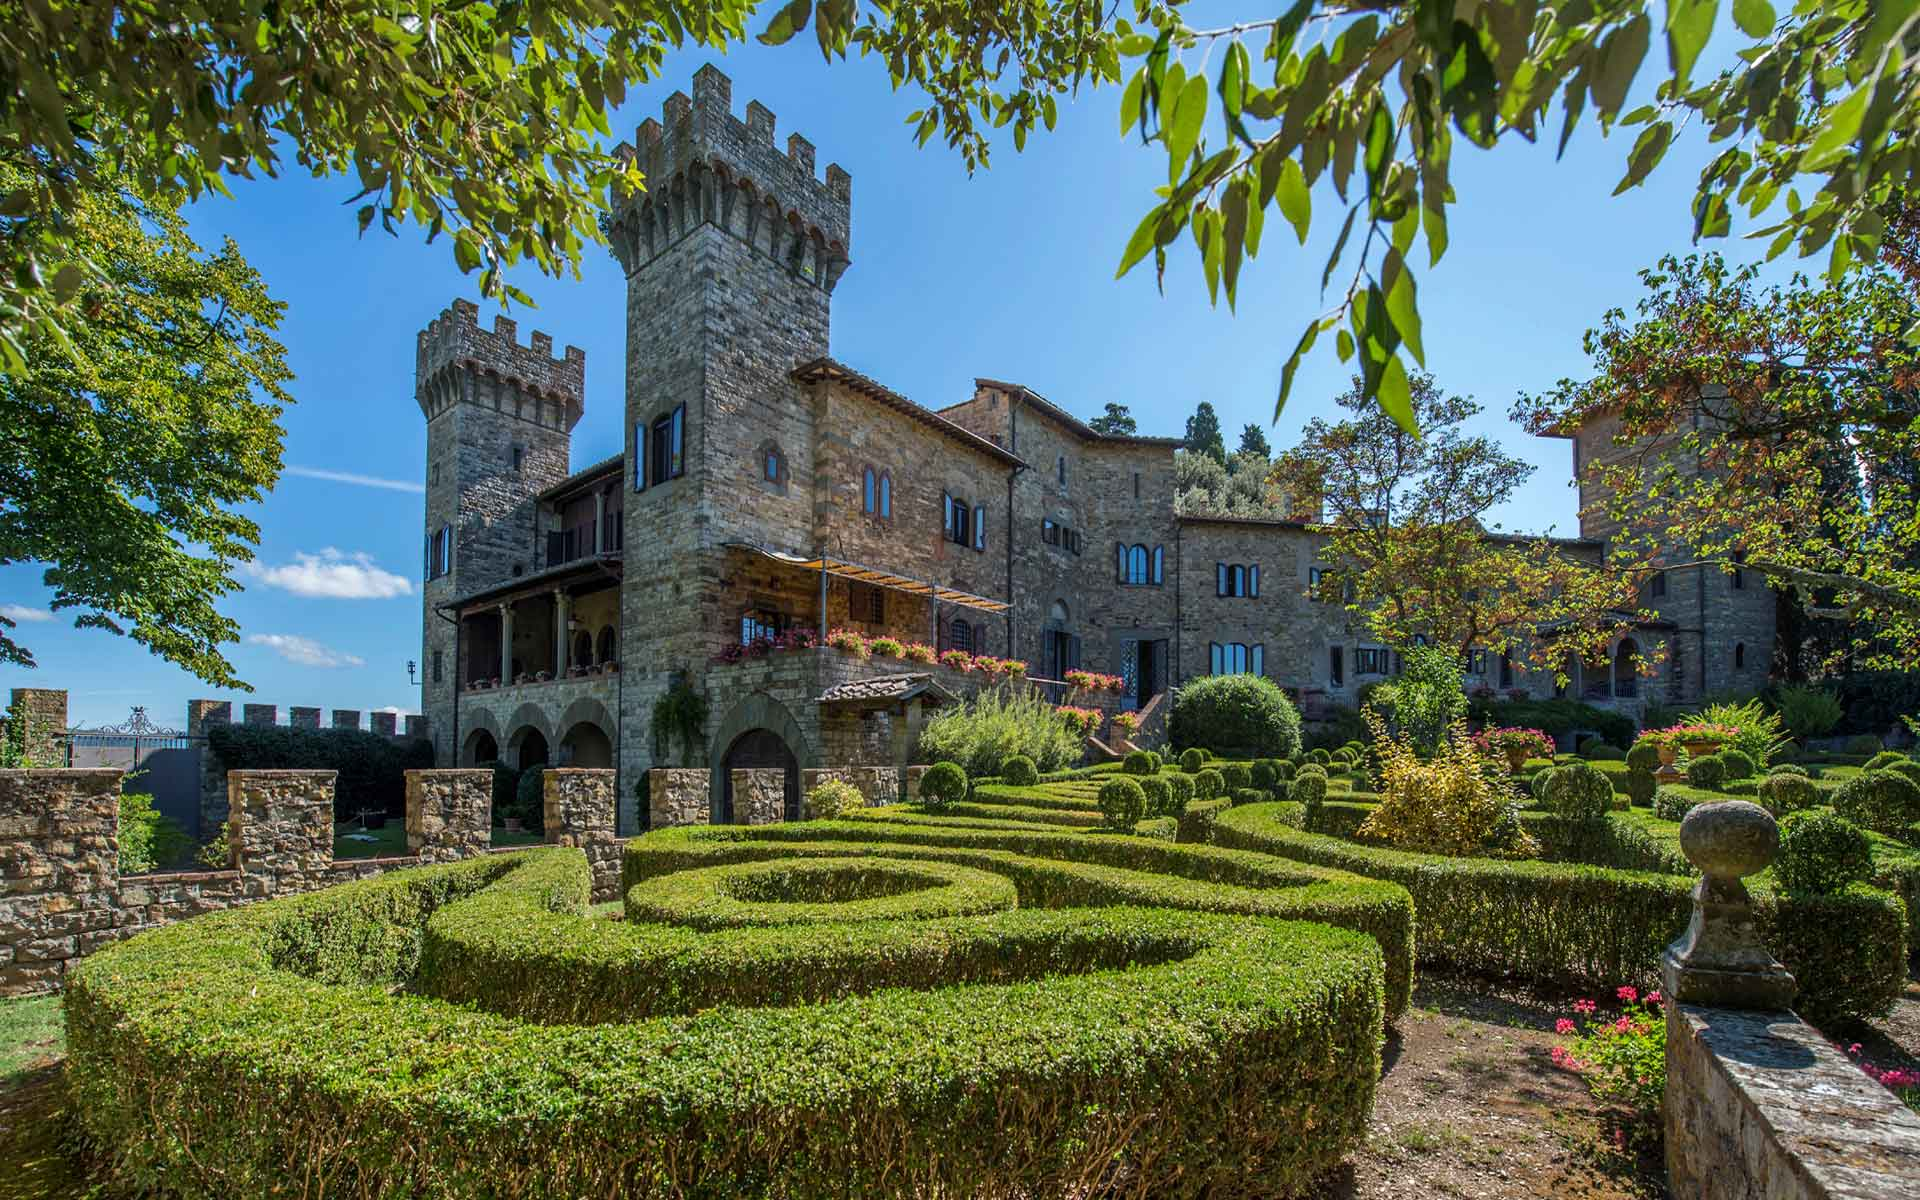 This Gothic castle and vineyard estate has a breathtaking location in the Chianti Classico wine region, between Florence and Sienna.